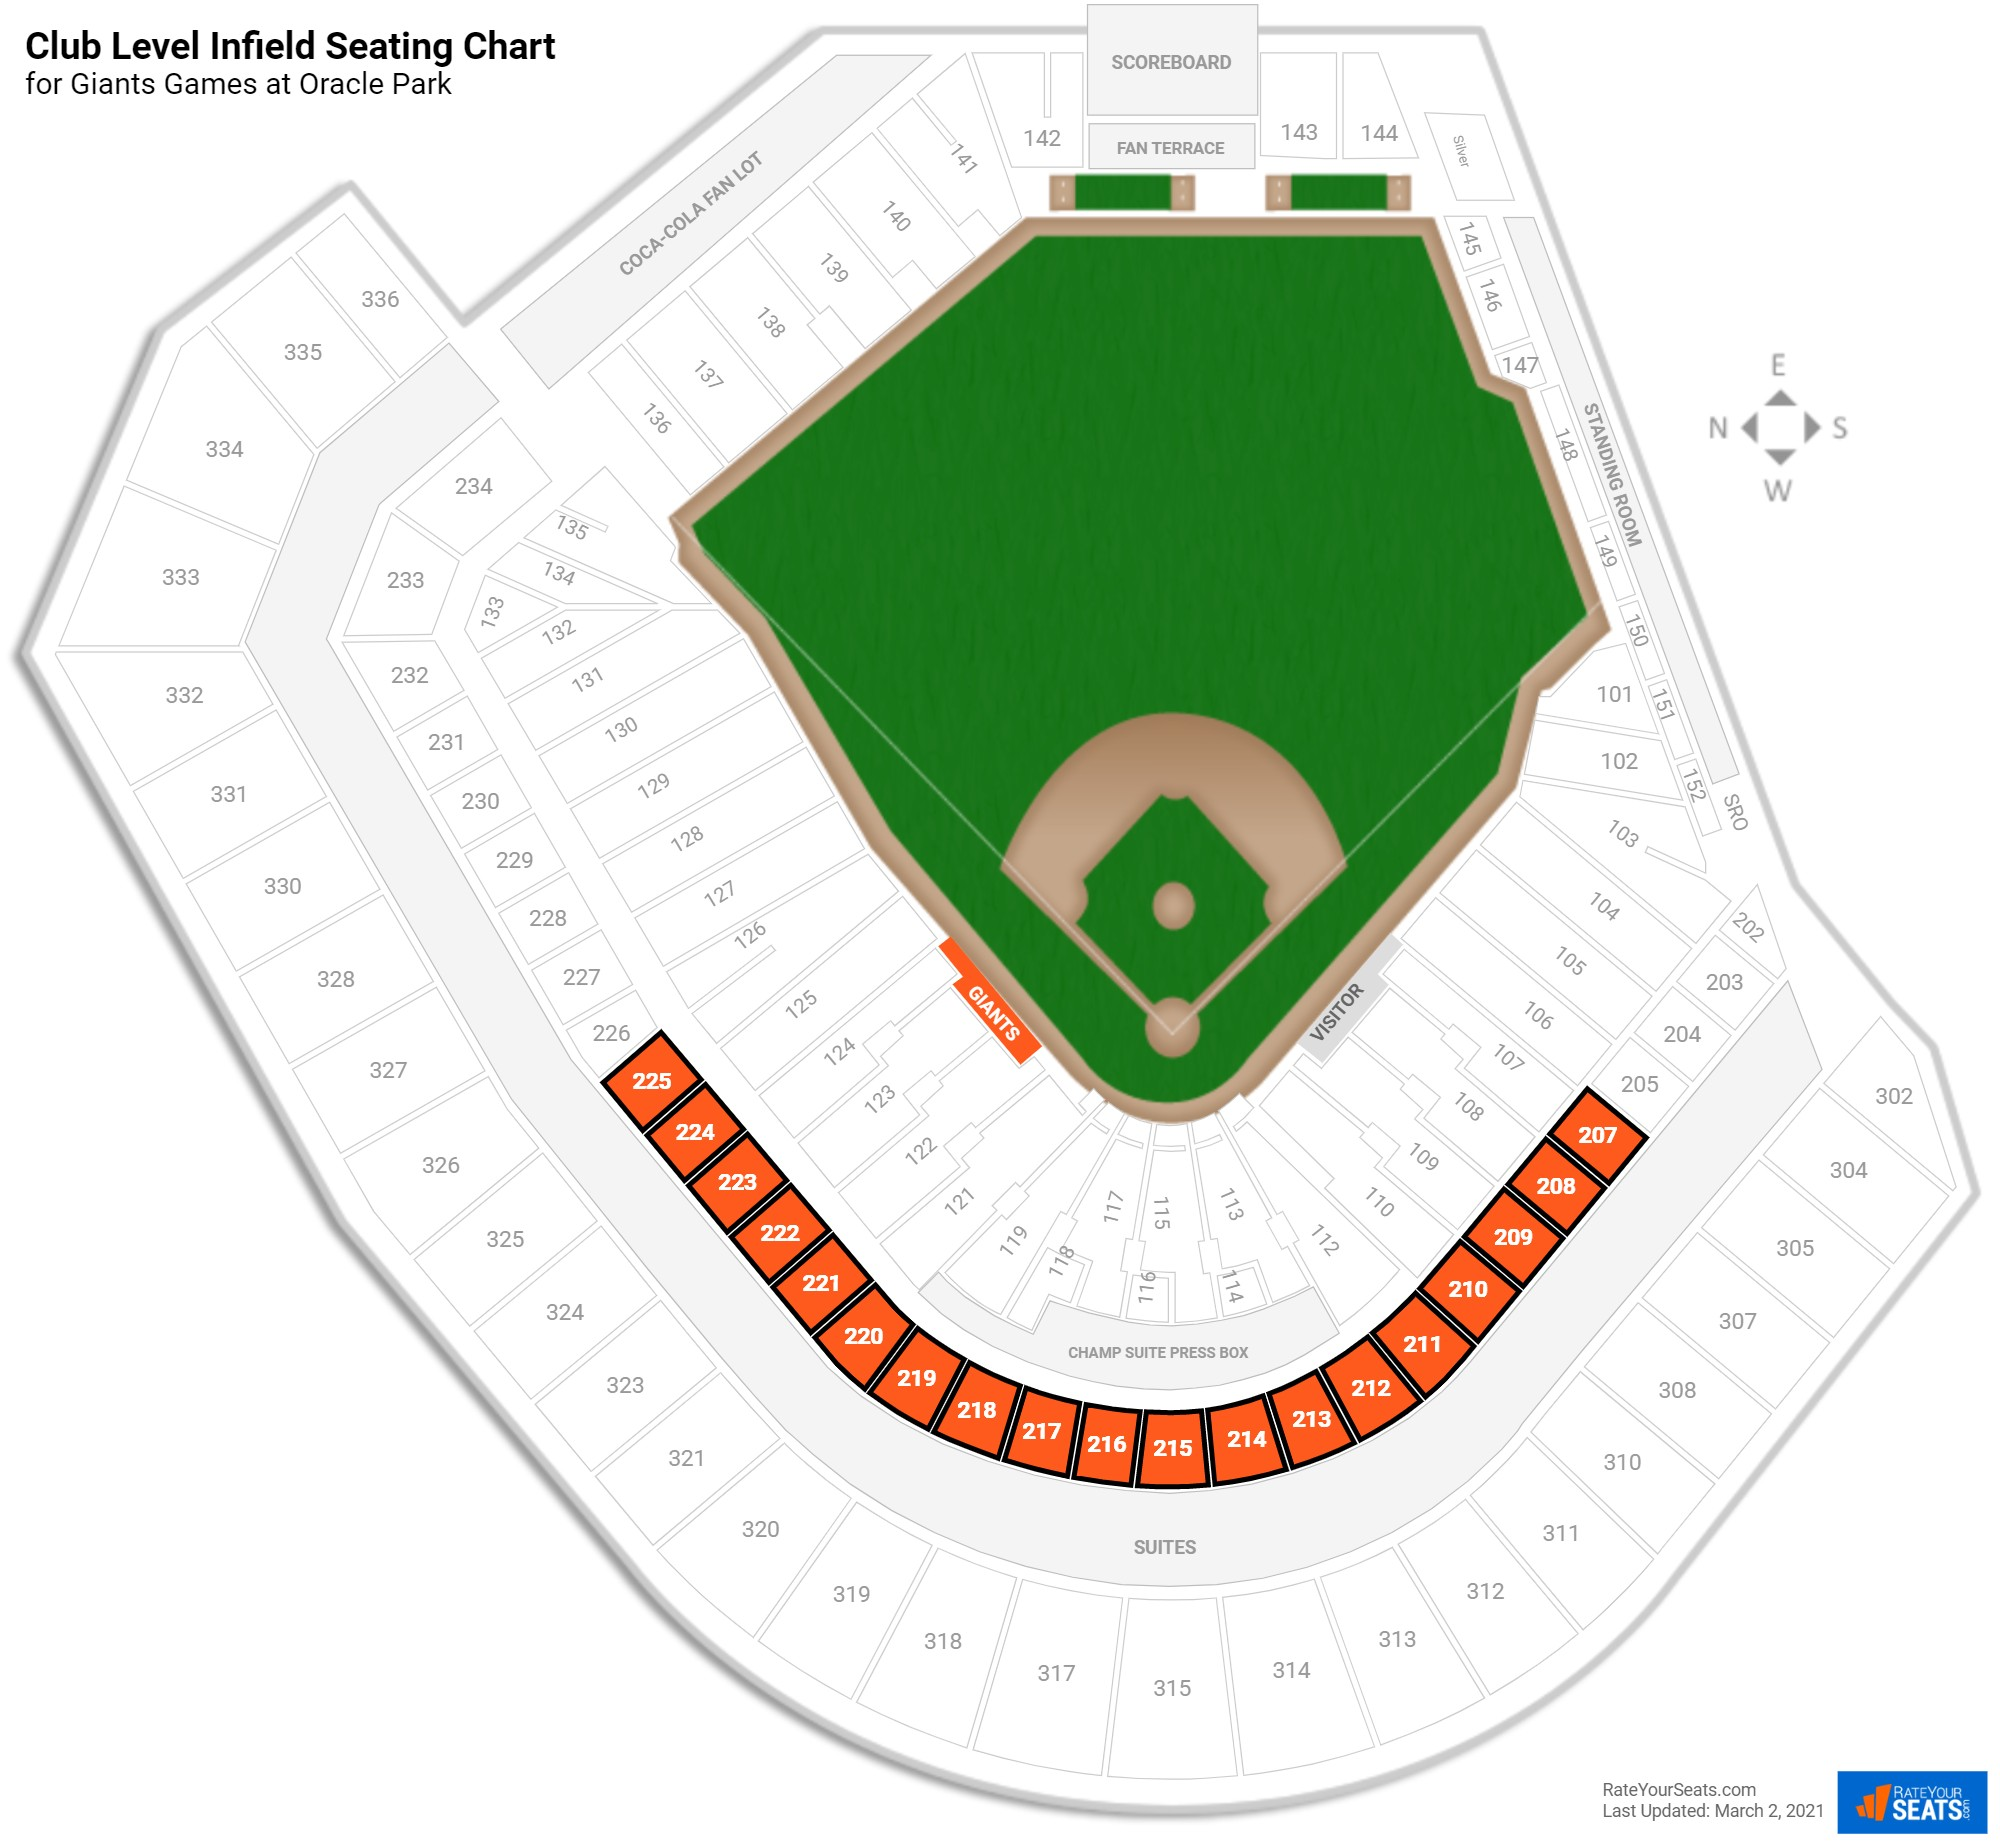 AT&T Park Club Level Infield seating chart